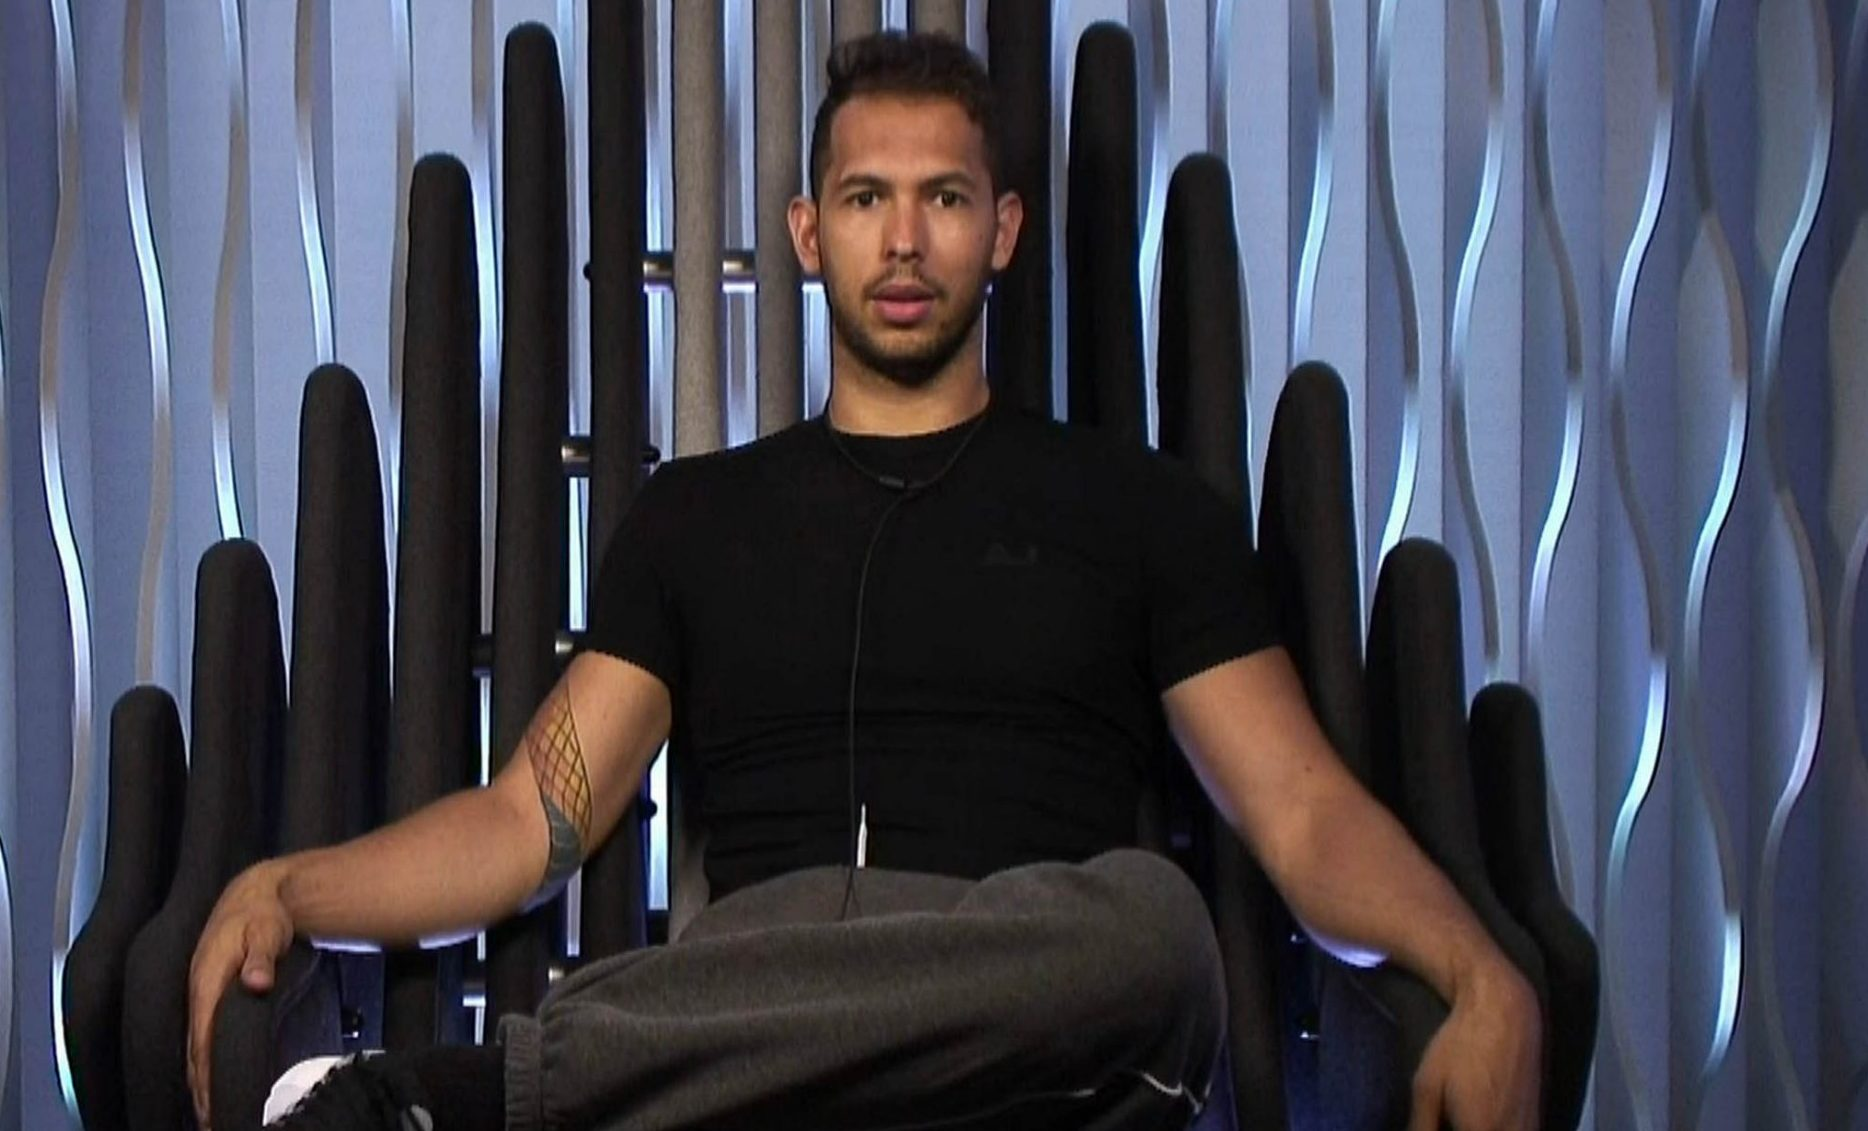 Big Brother's Andrew Tate says women should 'bear responsibility' for being raped in vile tweets